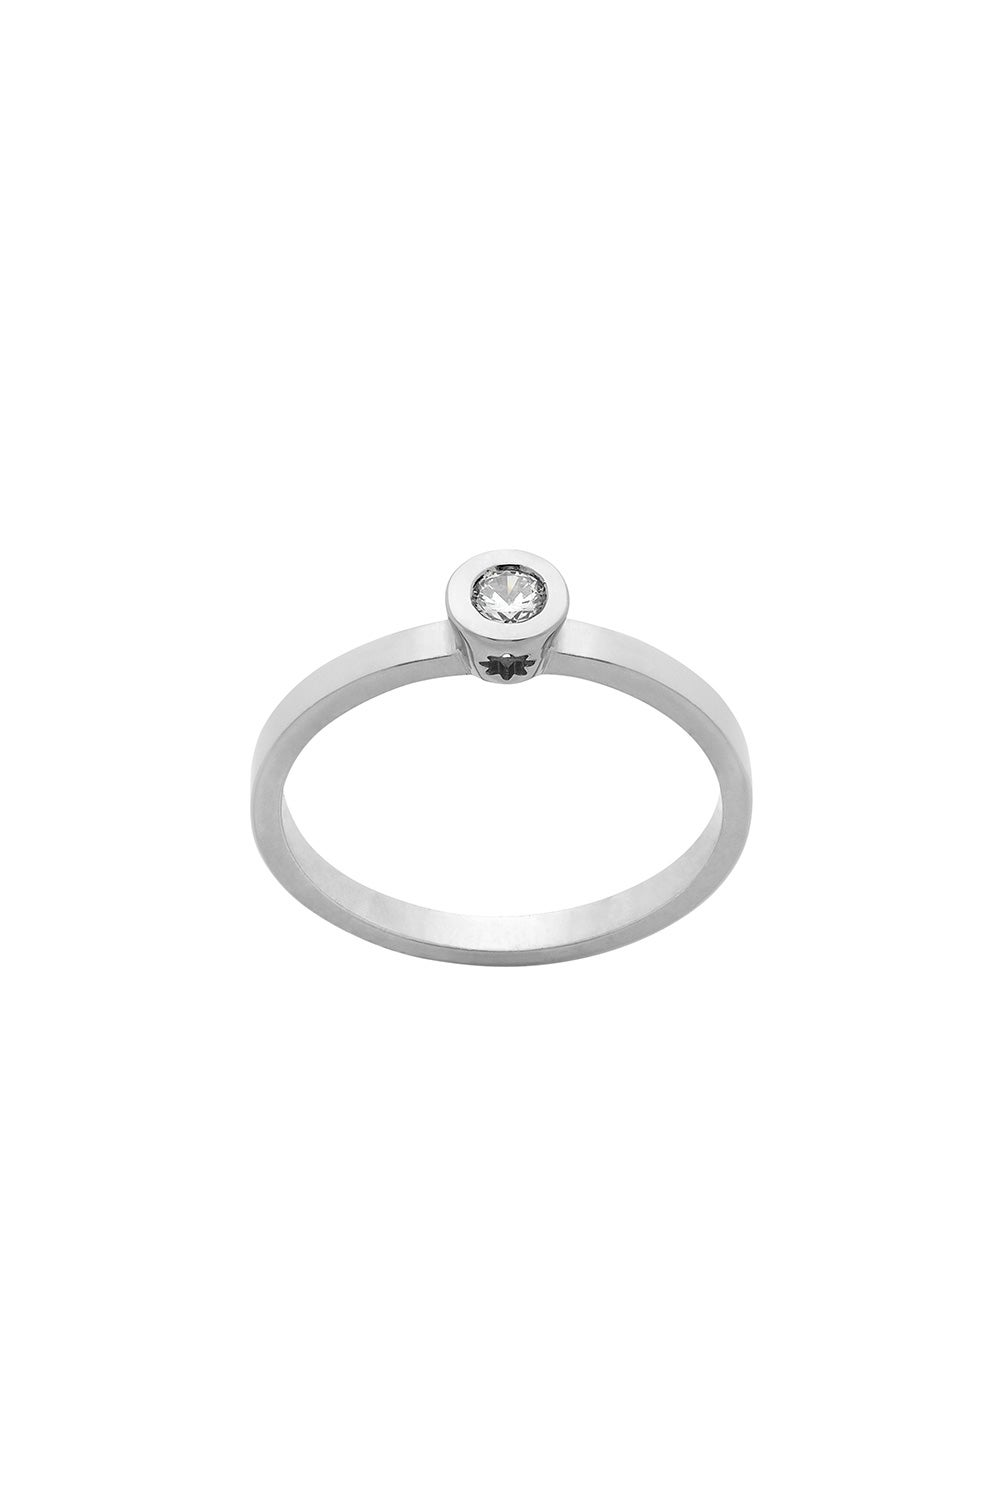 Diamond Brilliant Ring, 9ct White Gold, .10ct Diamond